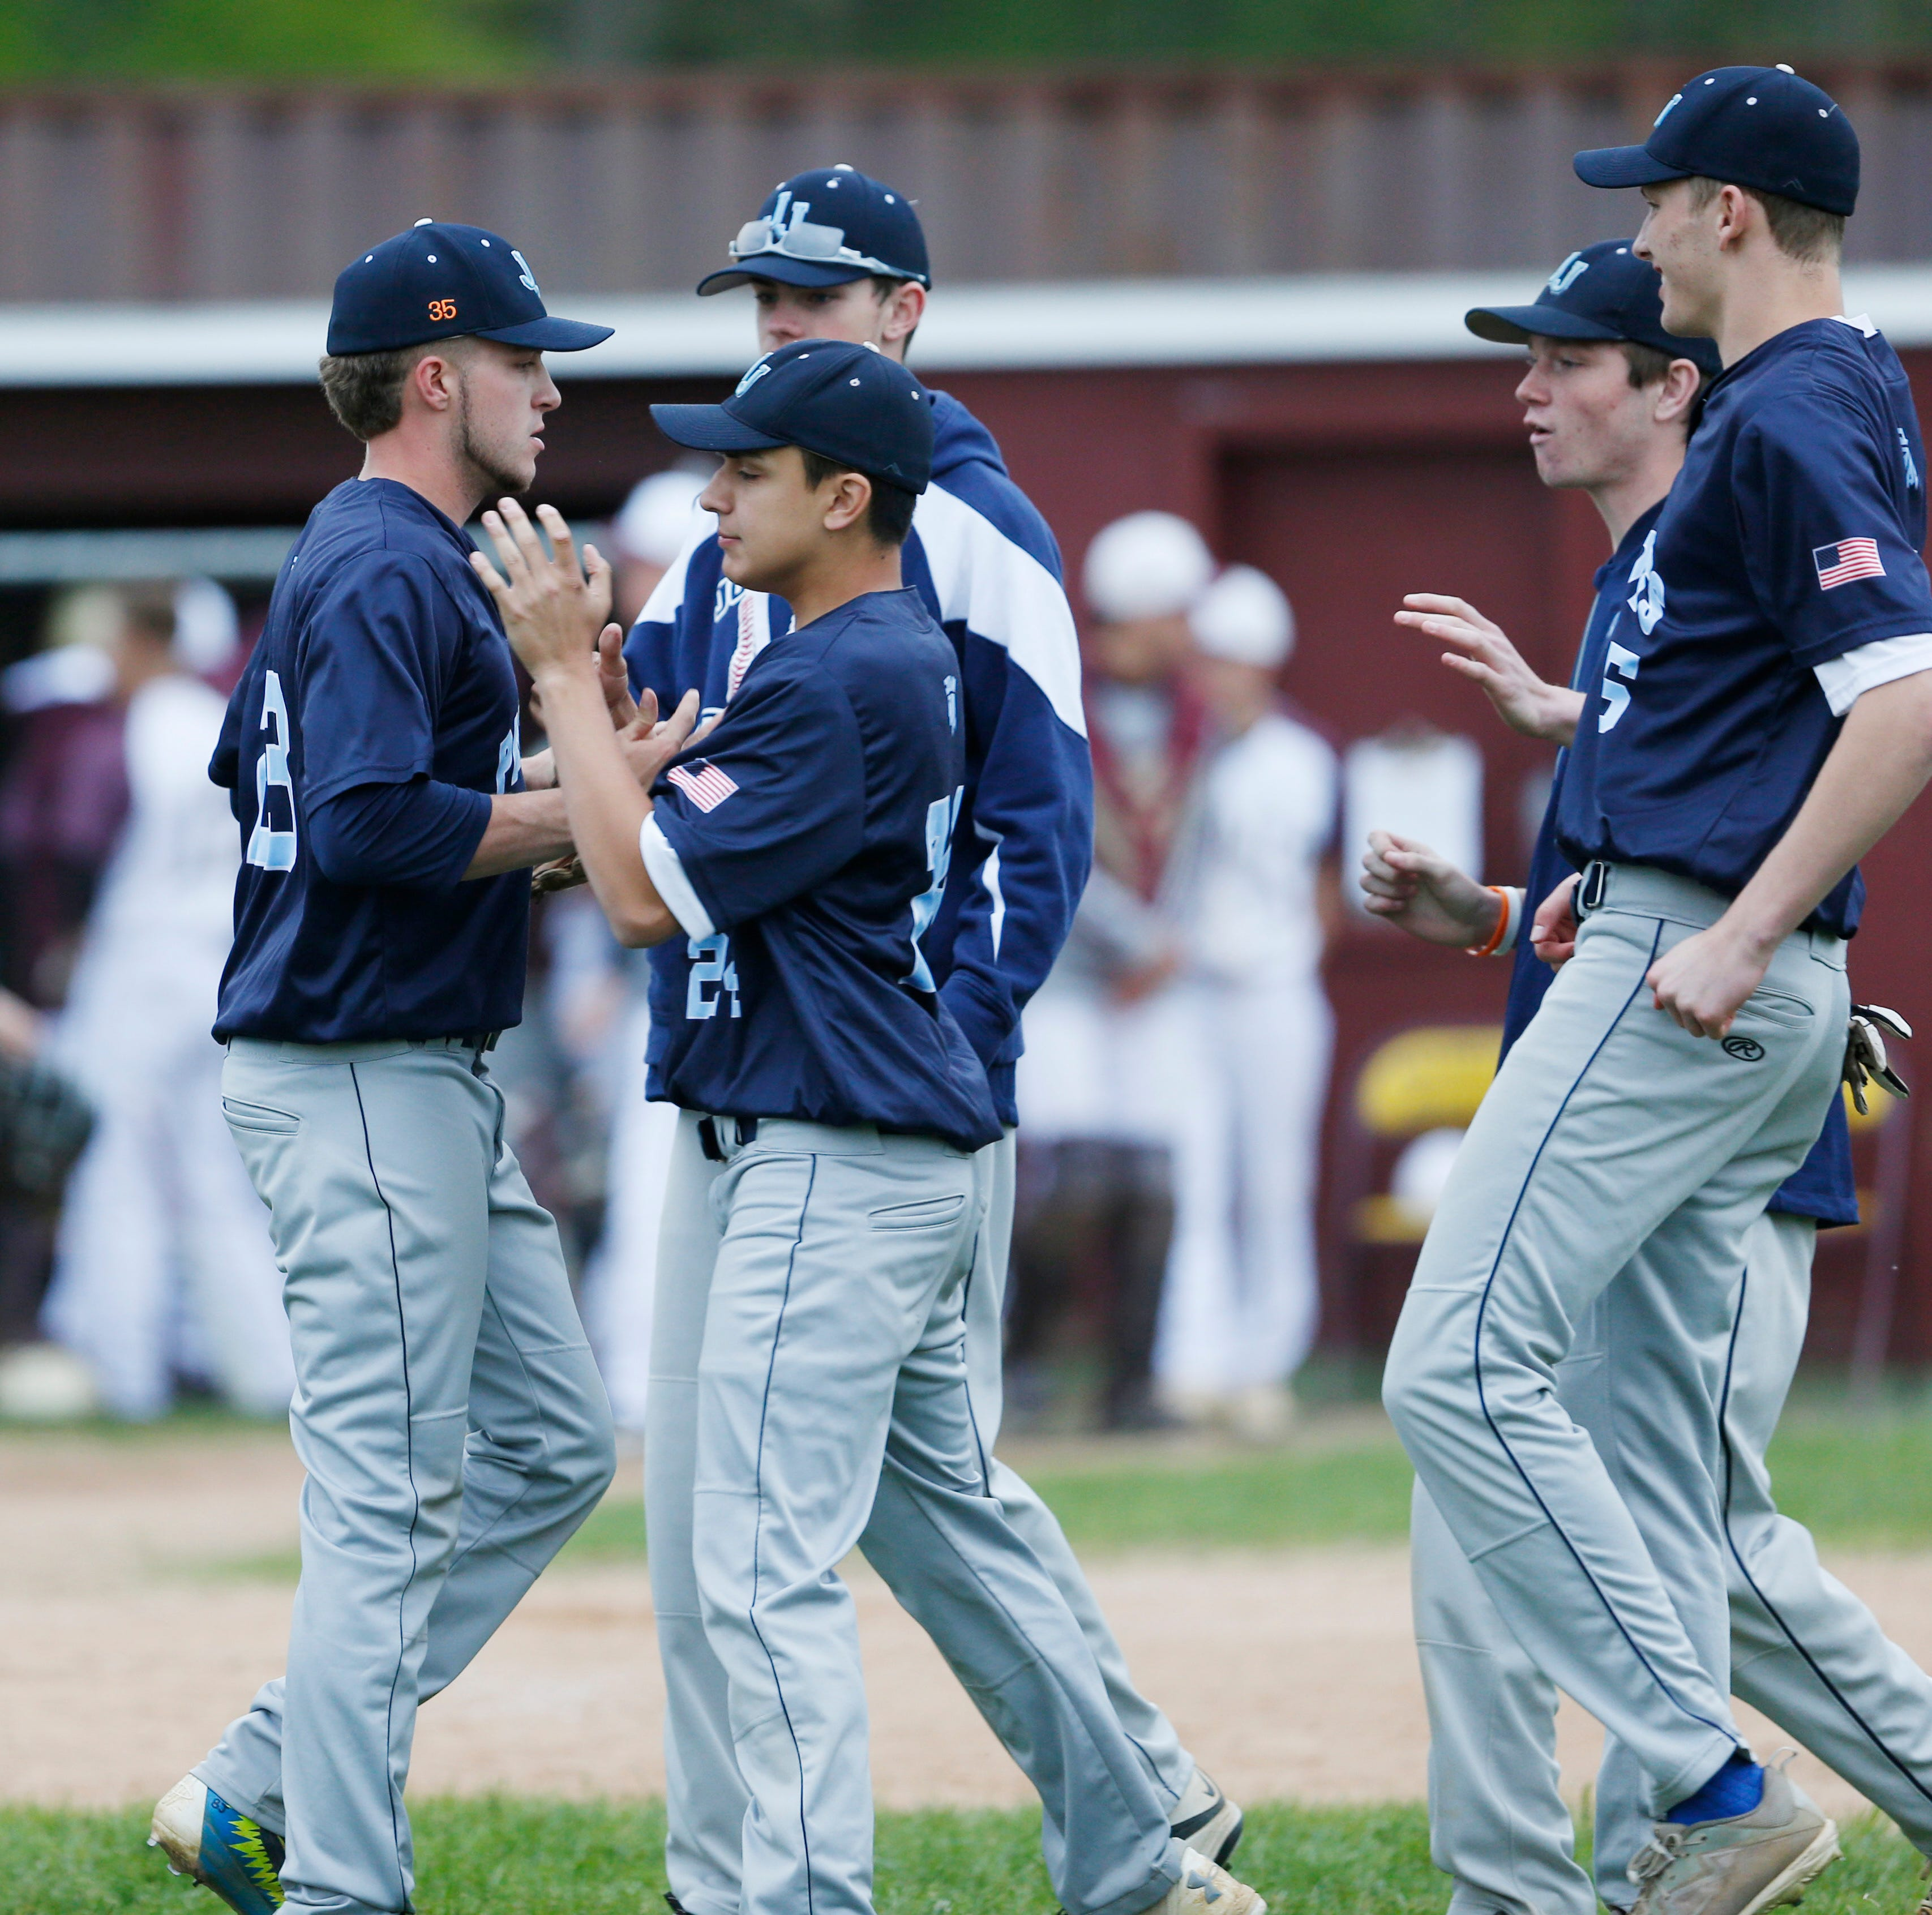 Baseball: John Jay edges Arlington as playoffs loom